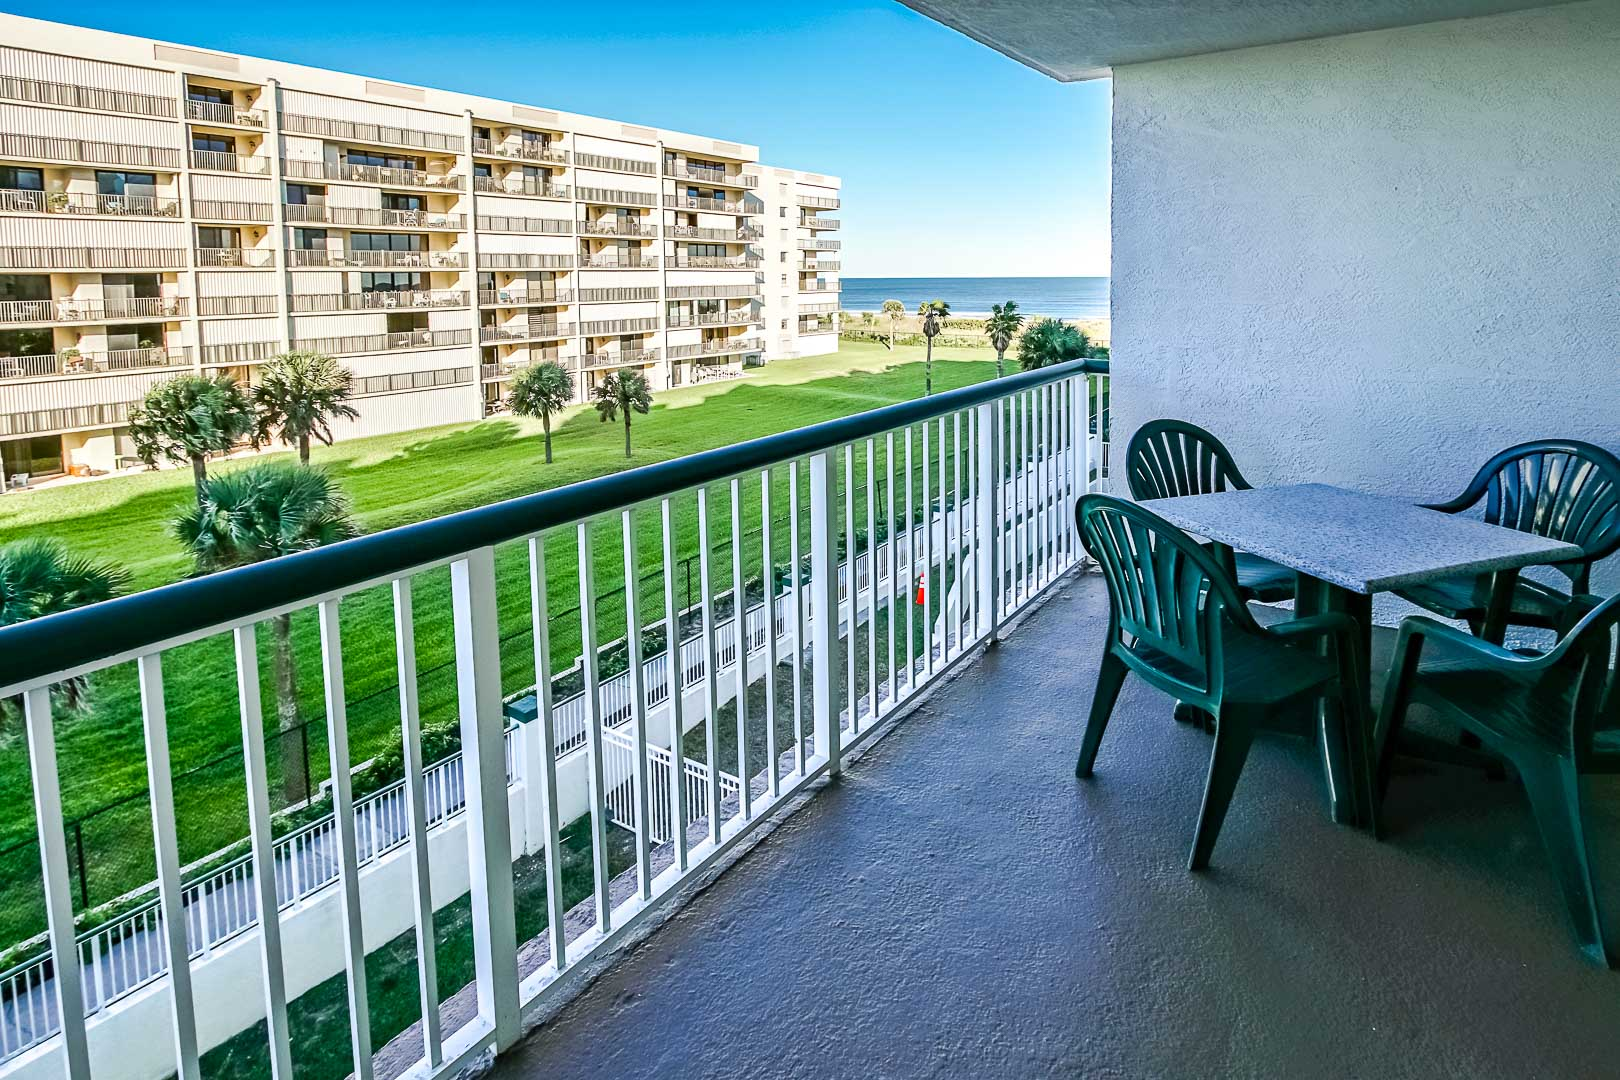 A scenic ocean view from the balcony at VRI's The Resort on Cocoa Beach in Florida.